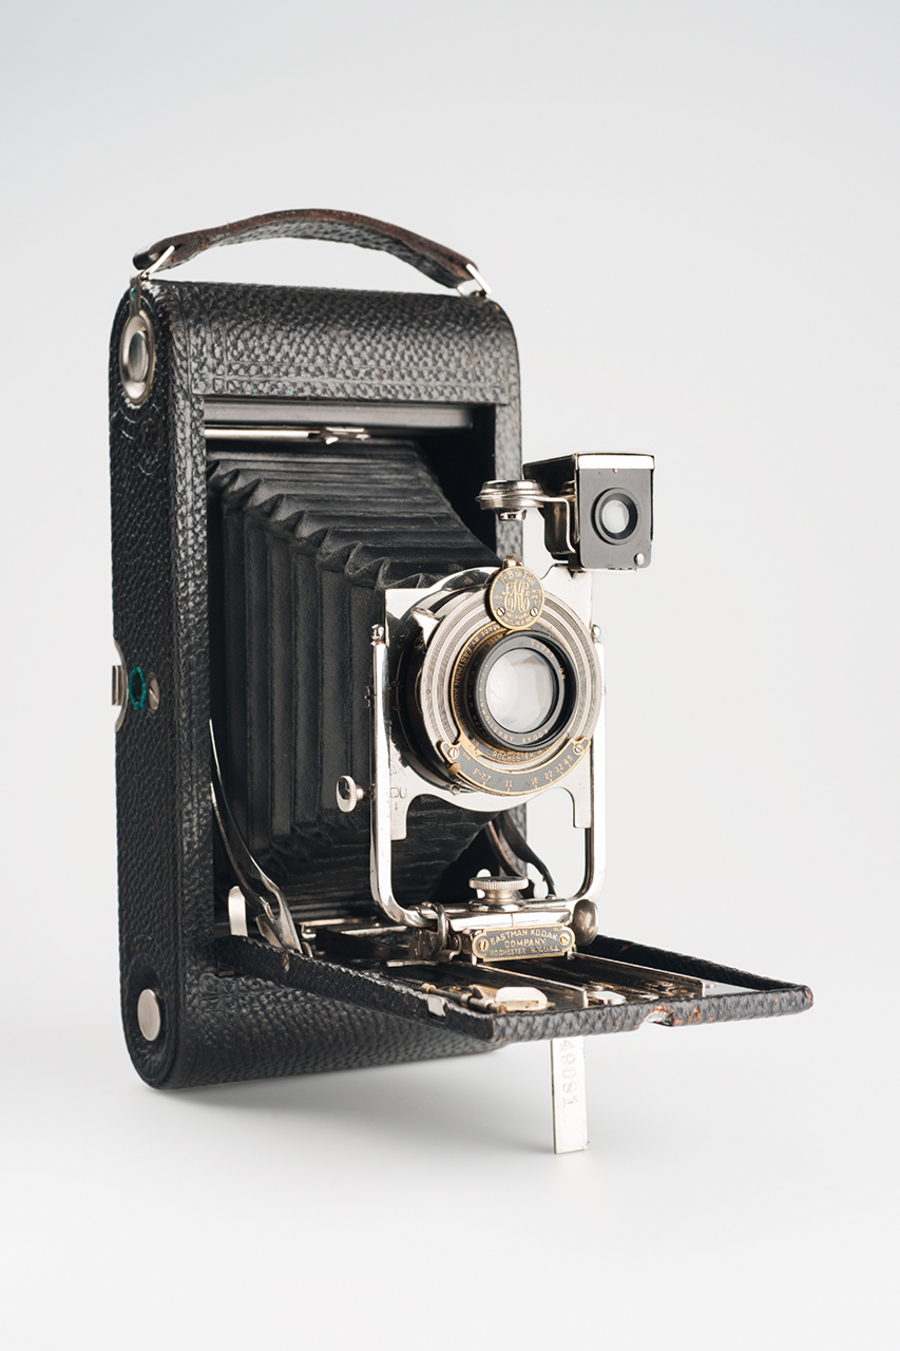 Kodak No 3A Folding Autographe